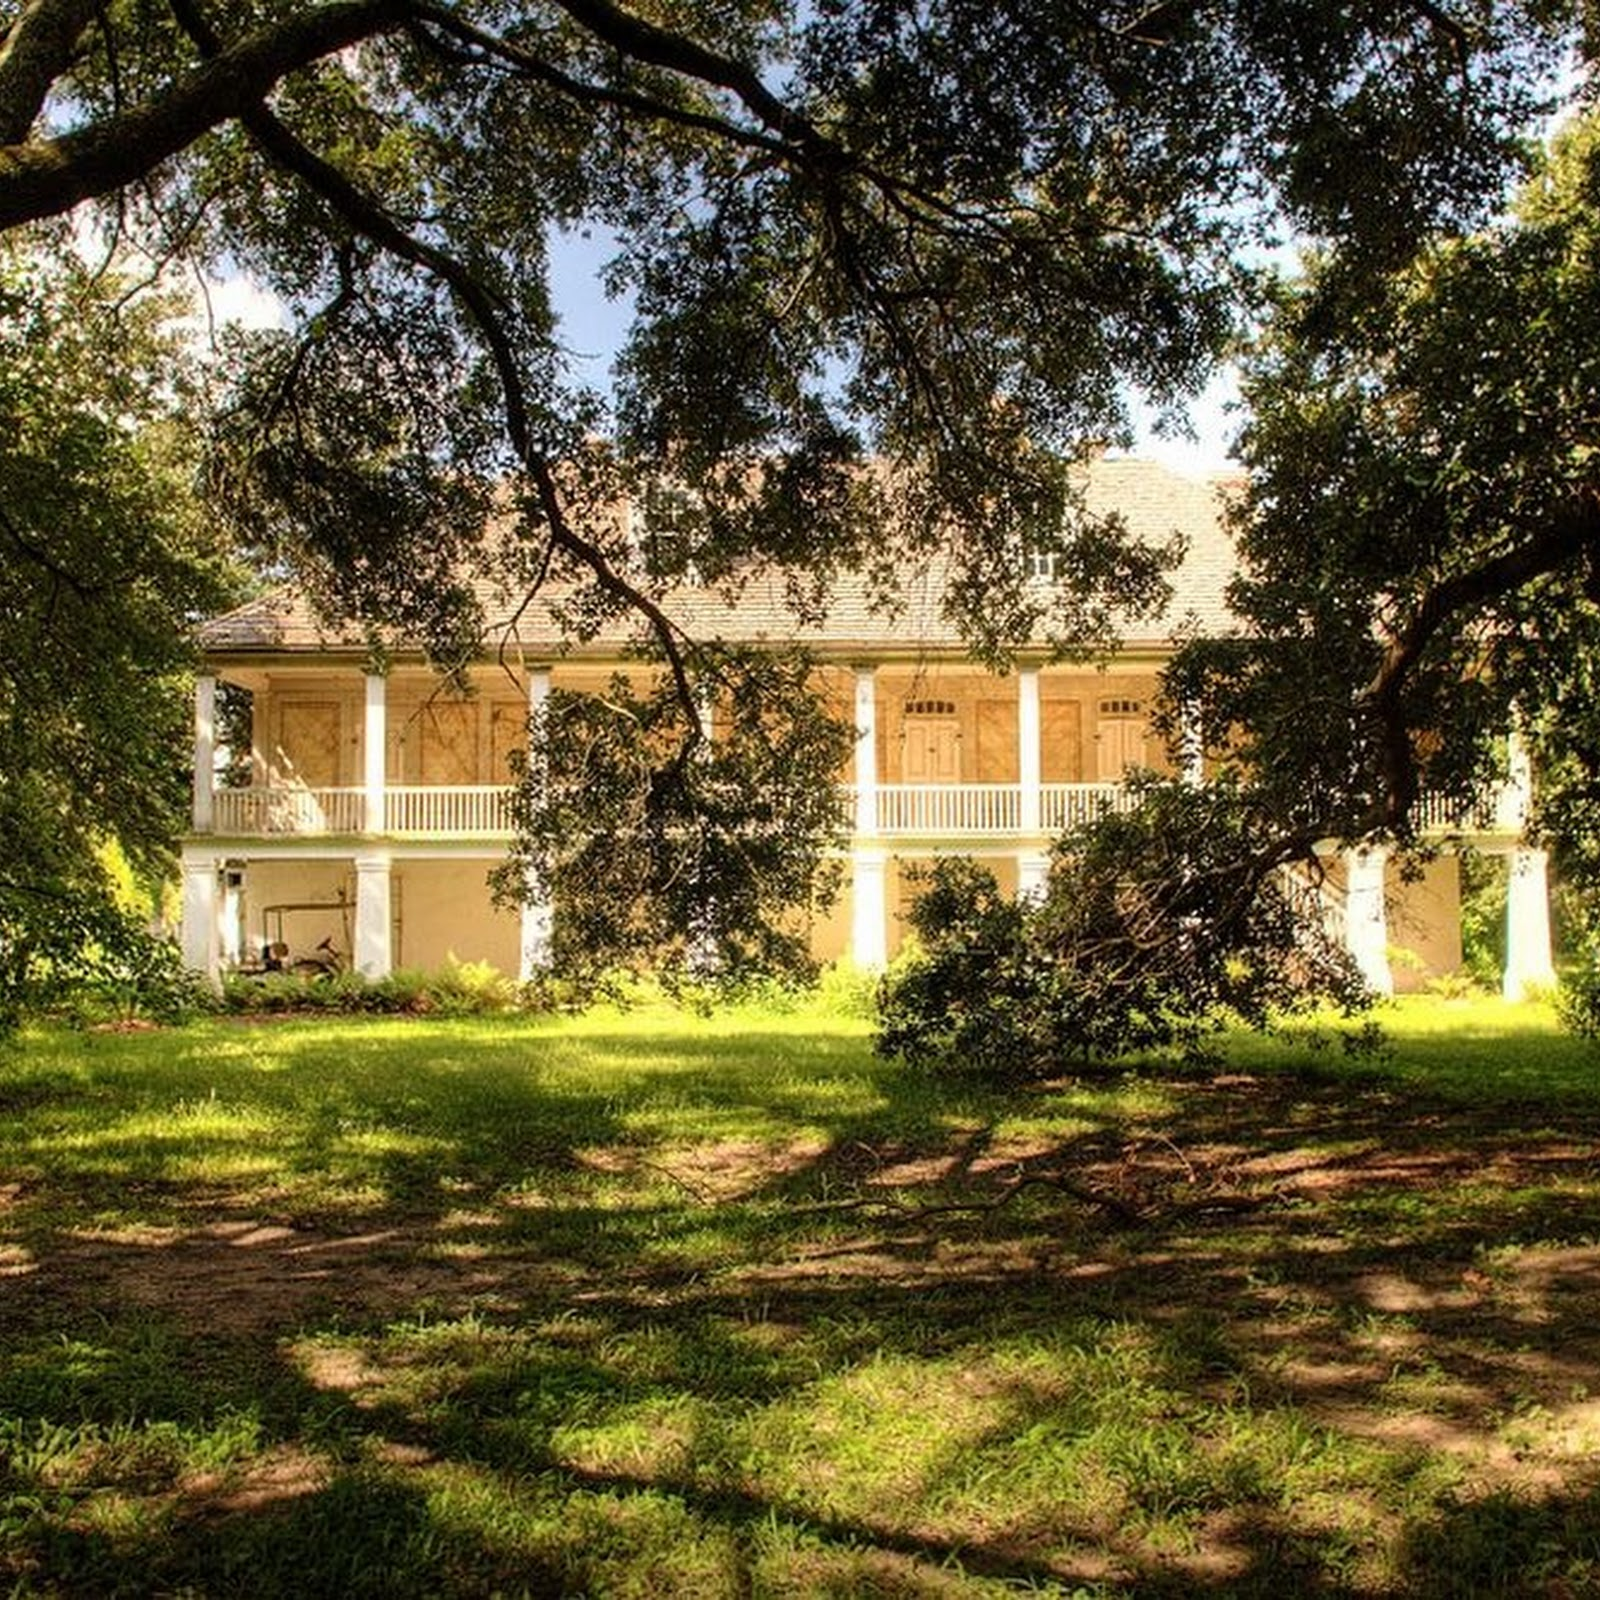 Whitney Plantation: America's First And Only Slavery Museum